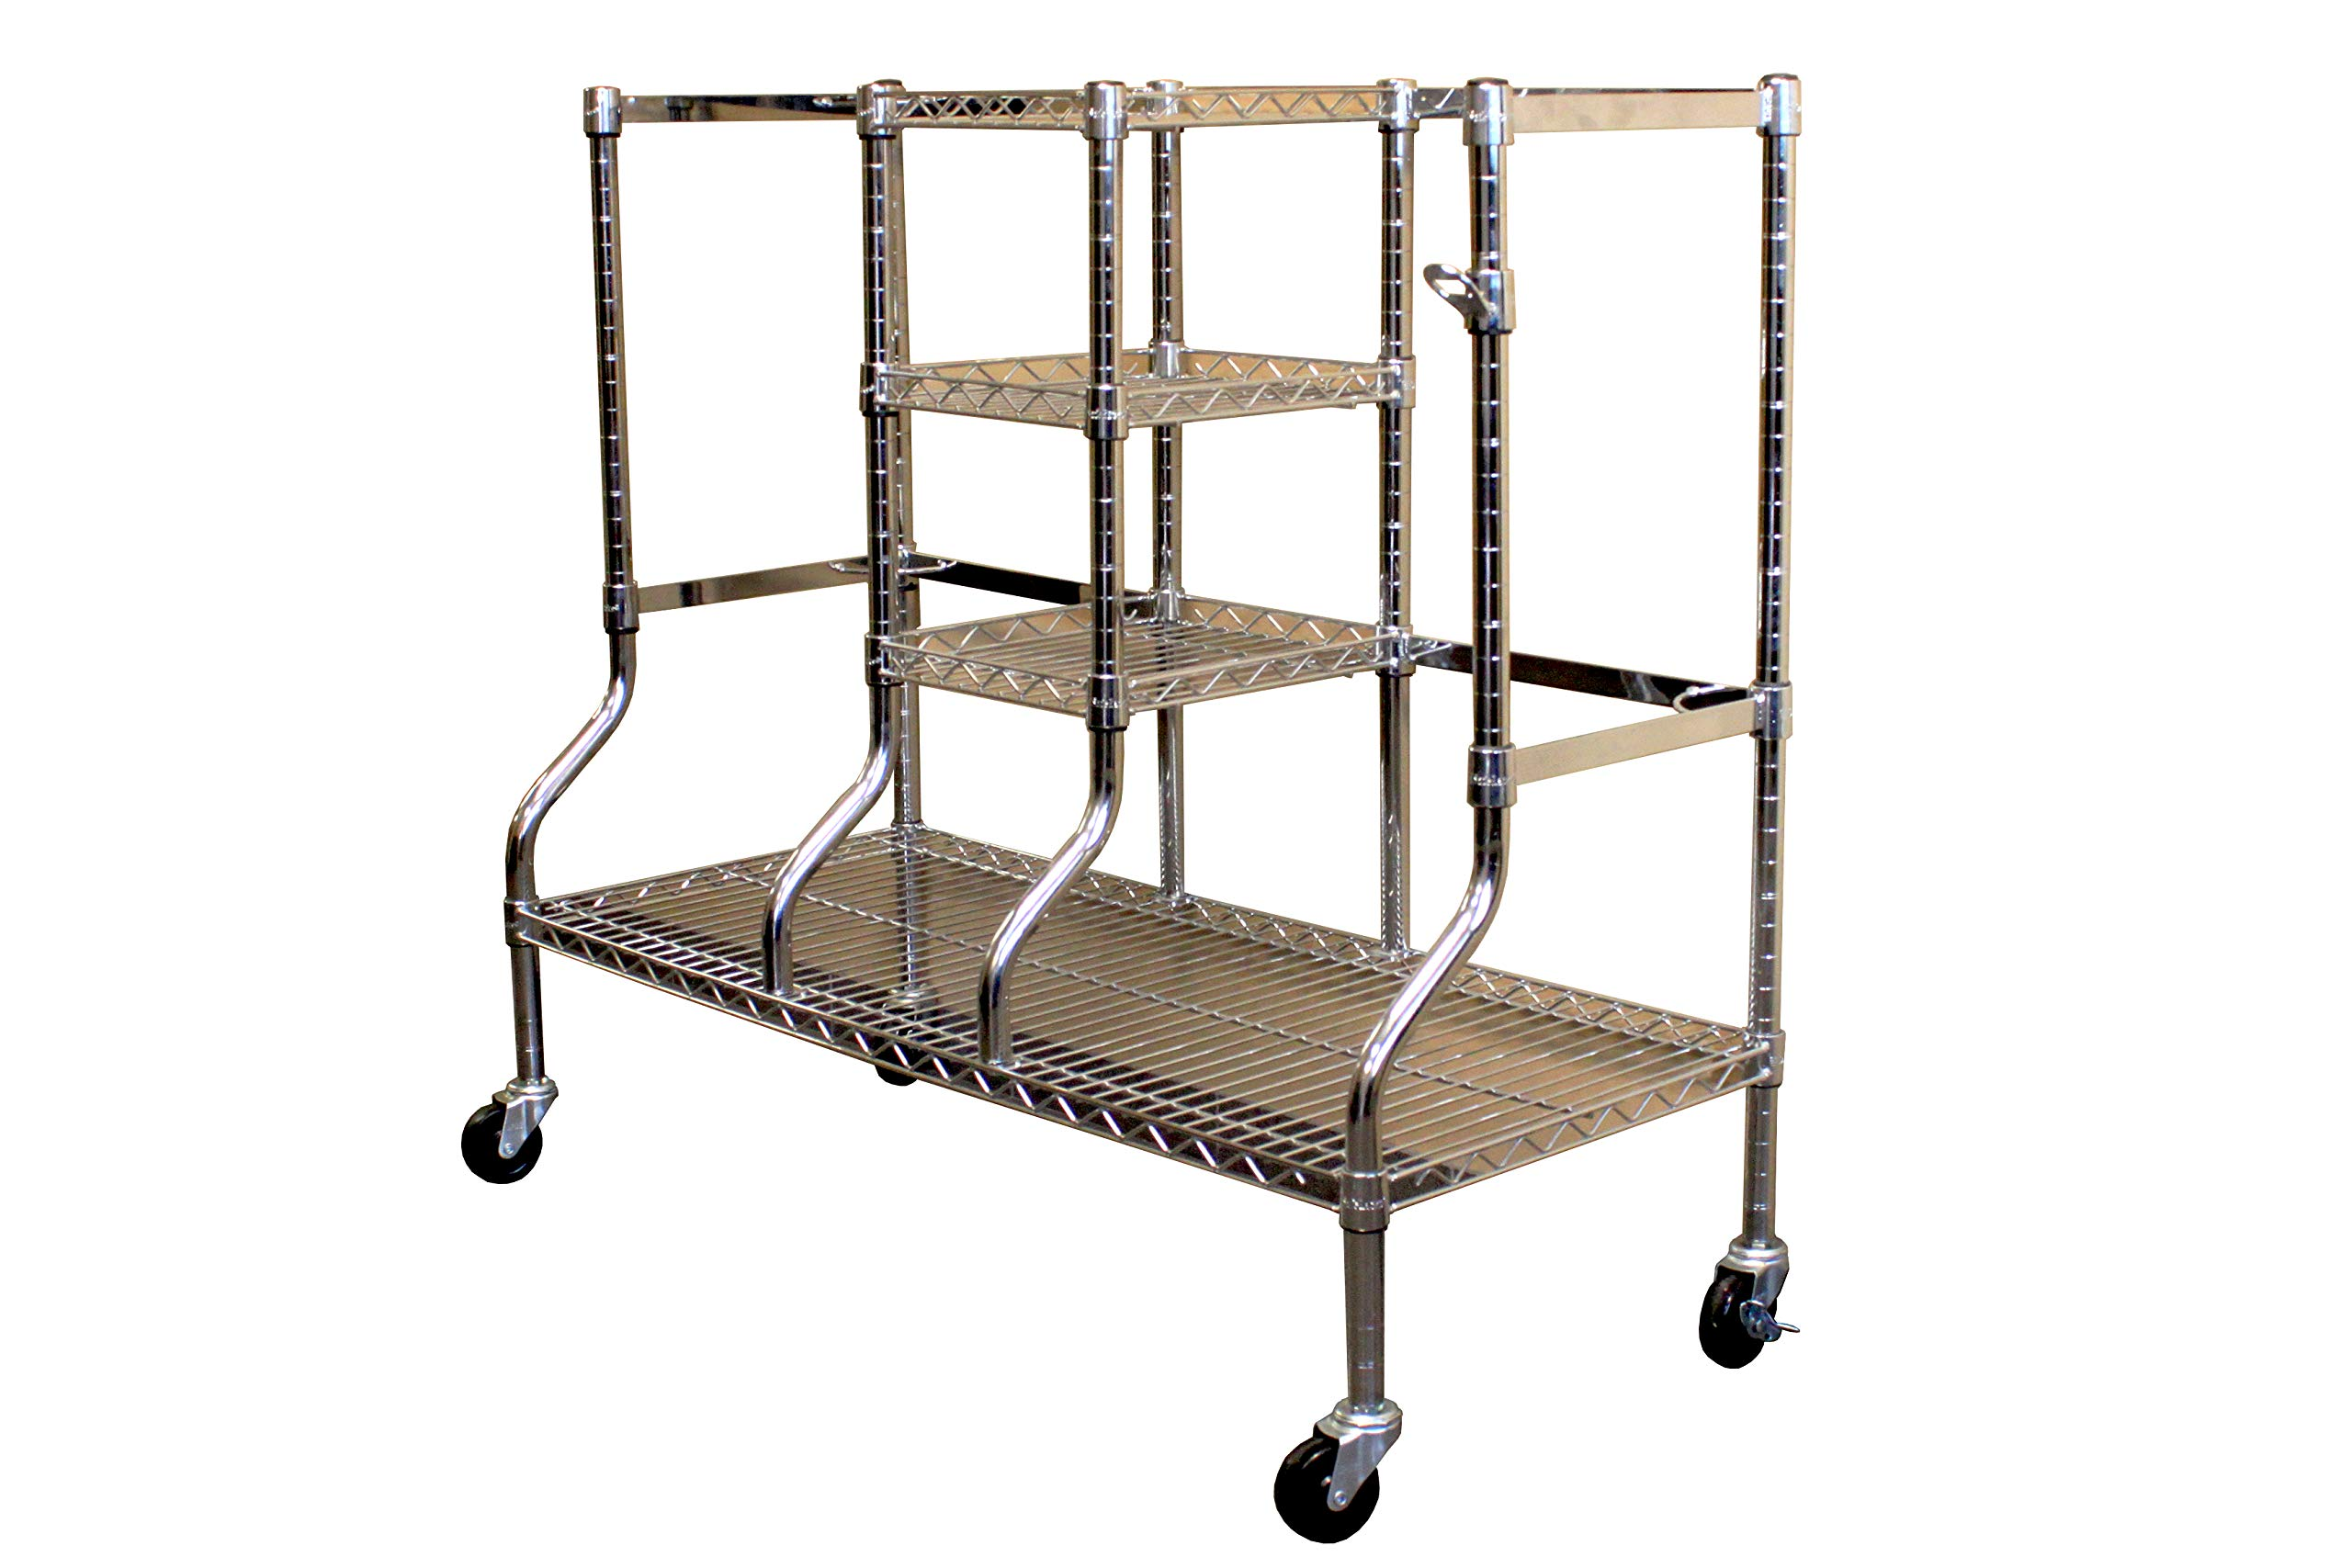 SafeRacks Golf Equipment Organizer Rack | Heavy-Duty Steel Wire Shelf Extra-Wide | Fits 2 Extra-Large Bags Plus Accessories (Golf Rack) by SafeRacks